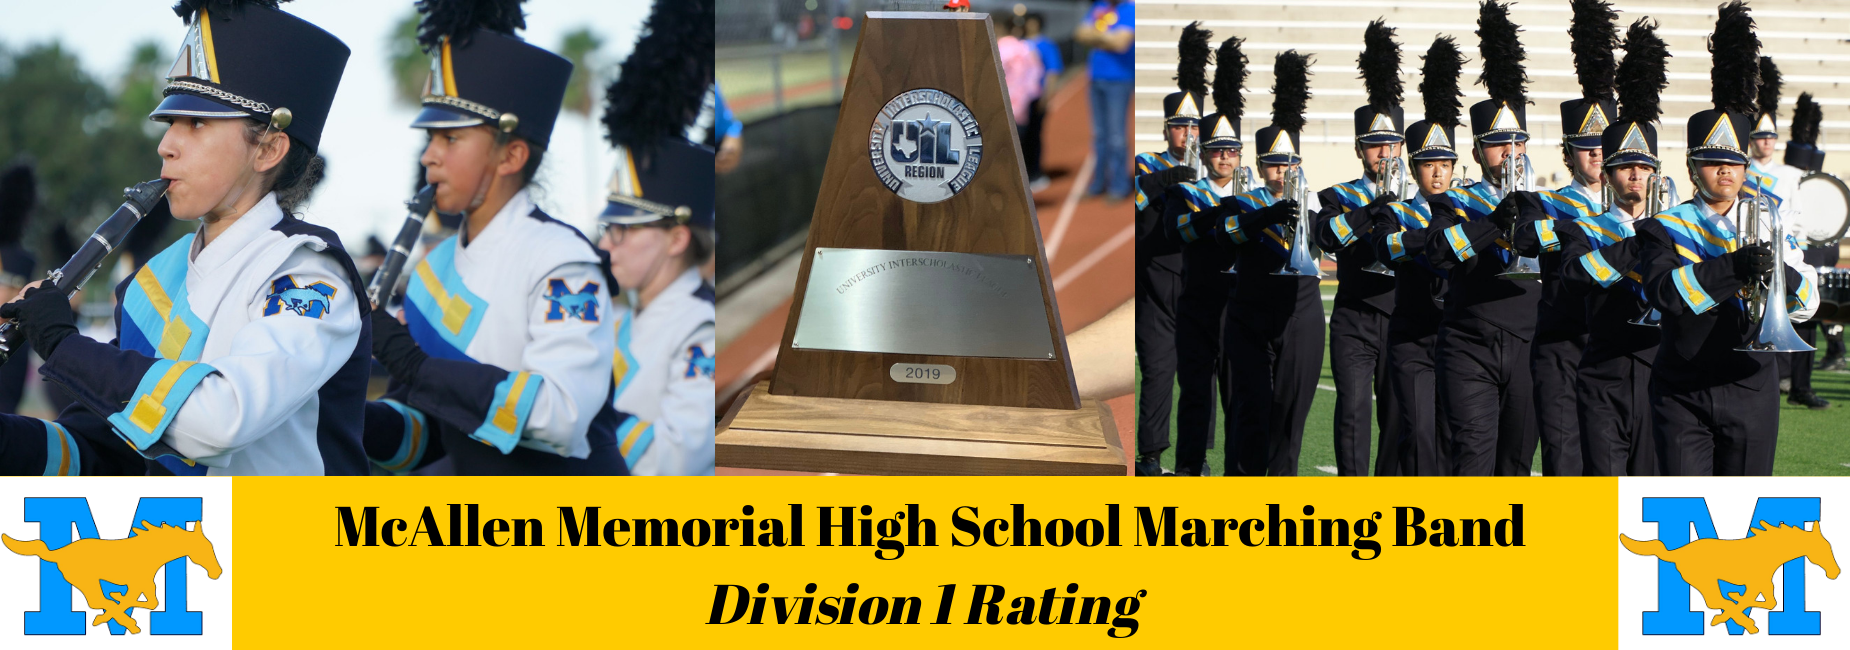 memorial high school band playing instruments, award in center